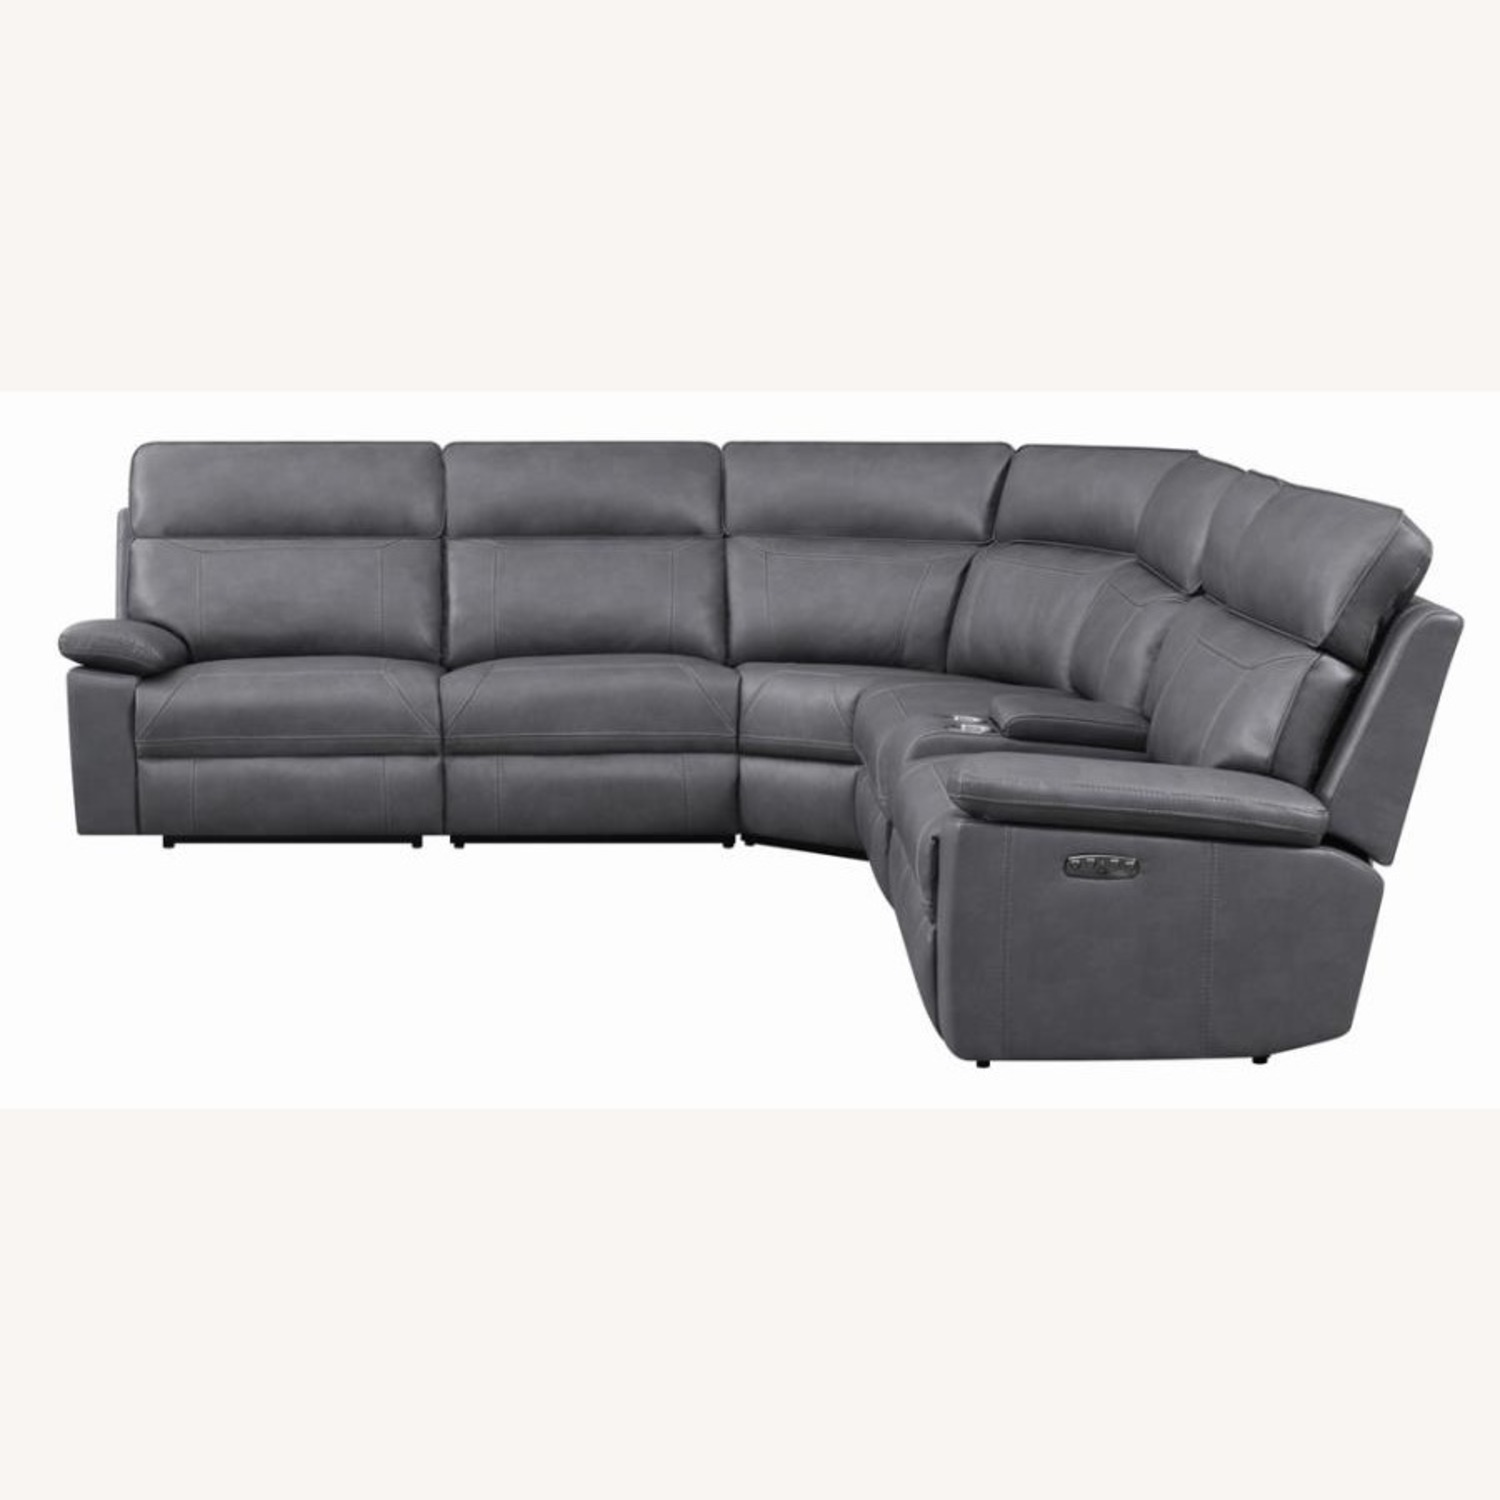 6-Piece Power2 Sectional In Grey Leatherette - image-5